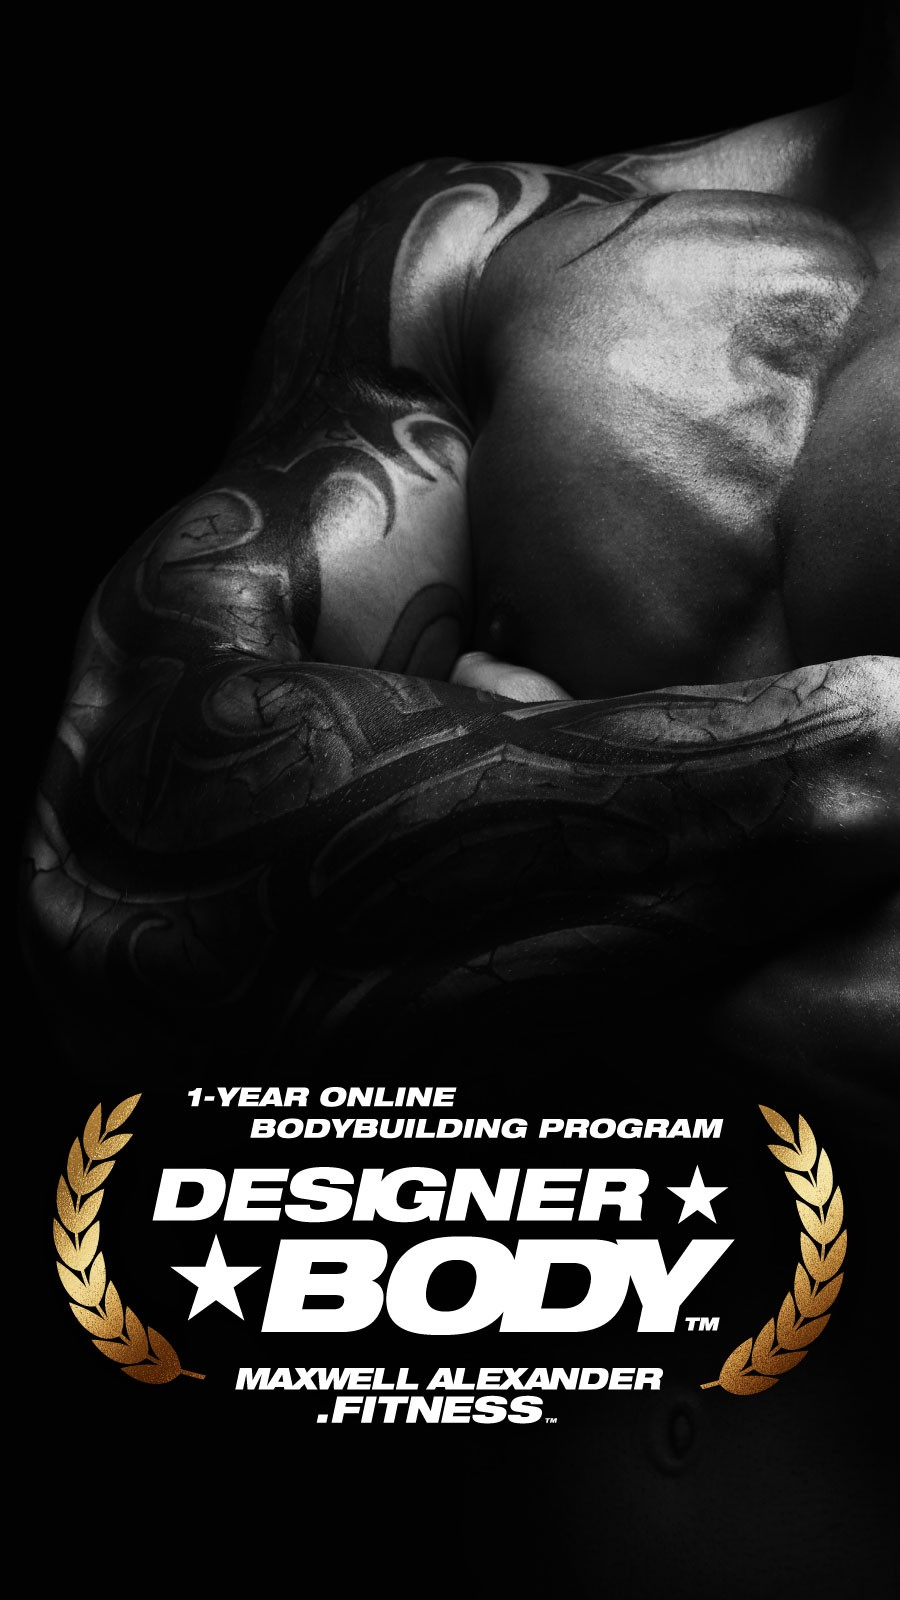 Designer Body - Online Bodybuilding Program by Maxwell Alexander Fitness